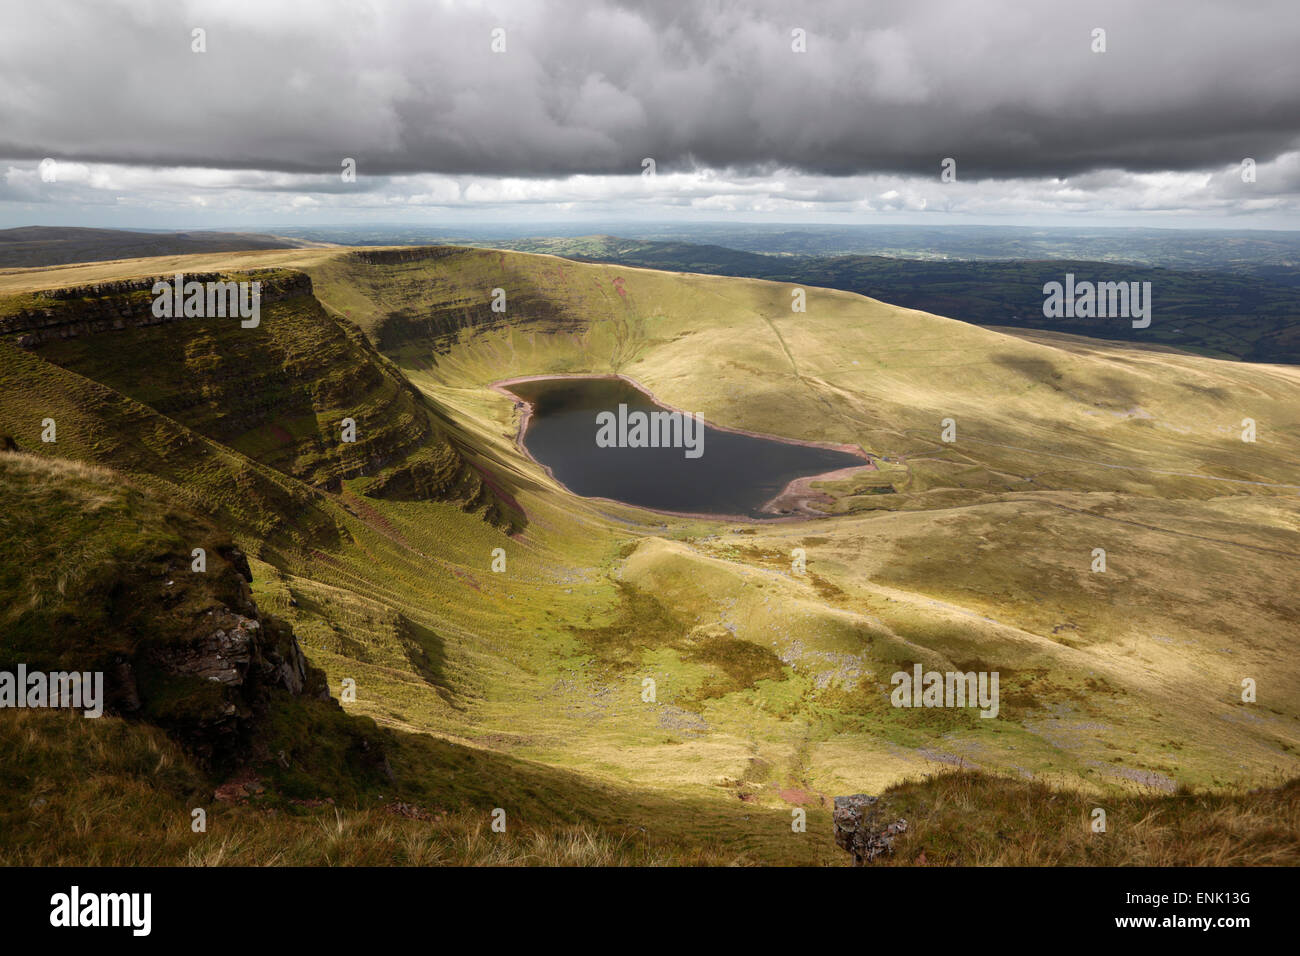 View of Llyn y Fan Fach, Black Mountain, Llanddeusant, Brecon Beacons National Park, Carmarthenshire, Wales, United - Stock Image